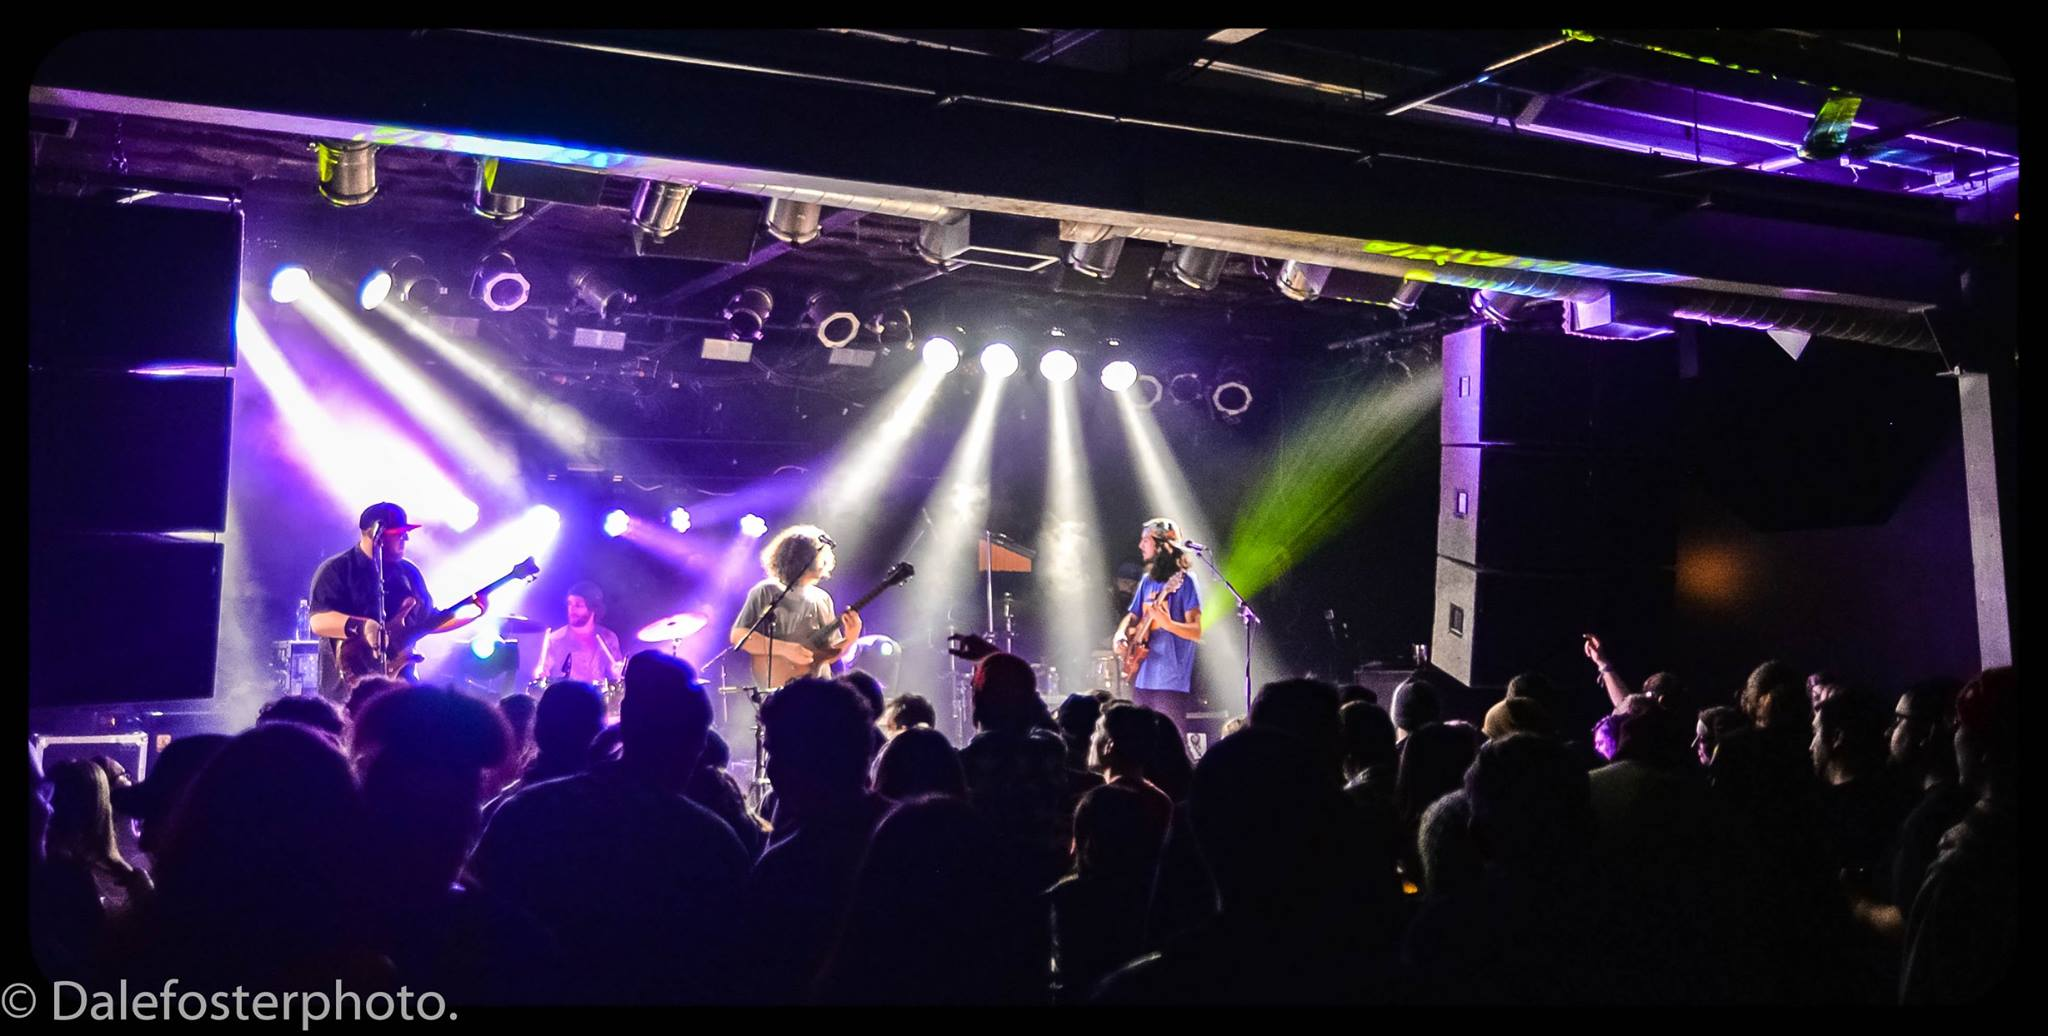 Review & Photos | EGi, Chachuba, JJ & Dre and The Ars Nova @ Bottom Lounge 3/5/16